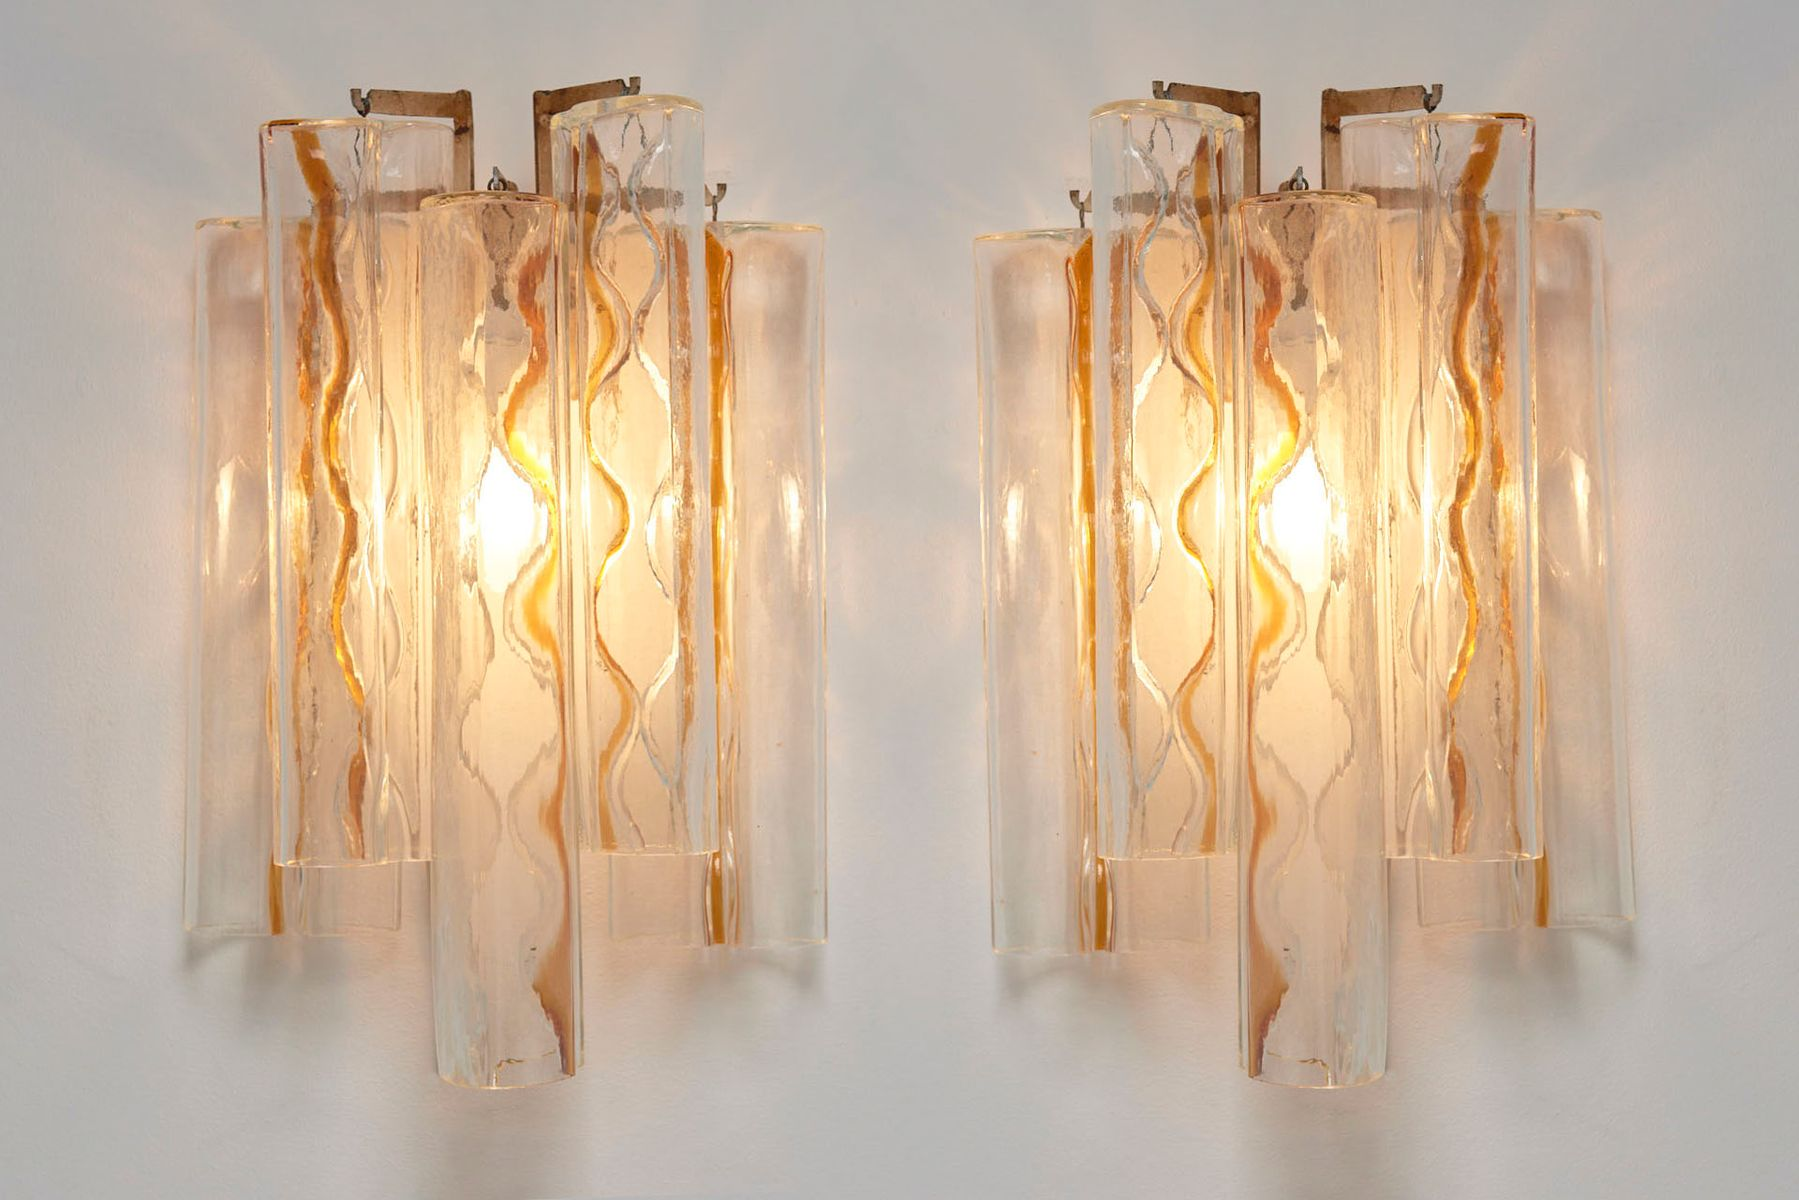 Bow Shaped Murano Glass Wall Sconces by Toni Zuccheri for Venini ...